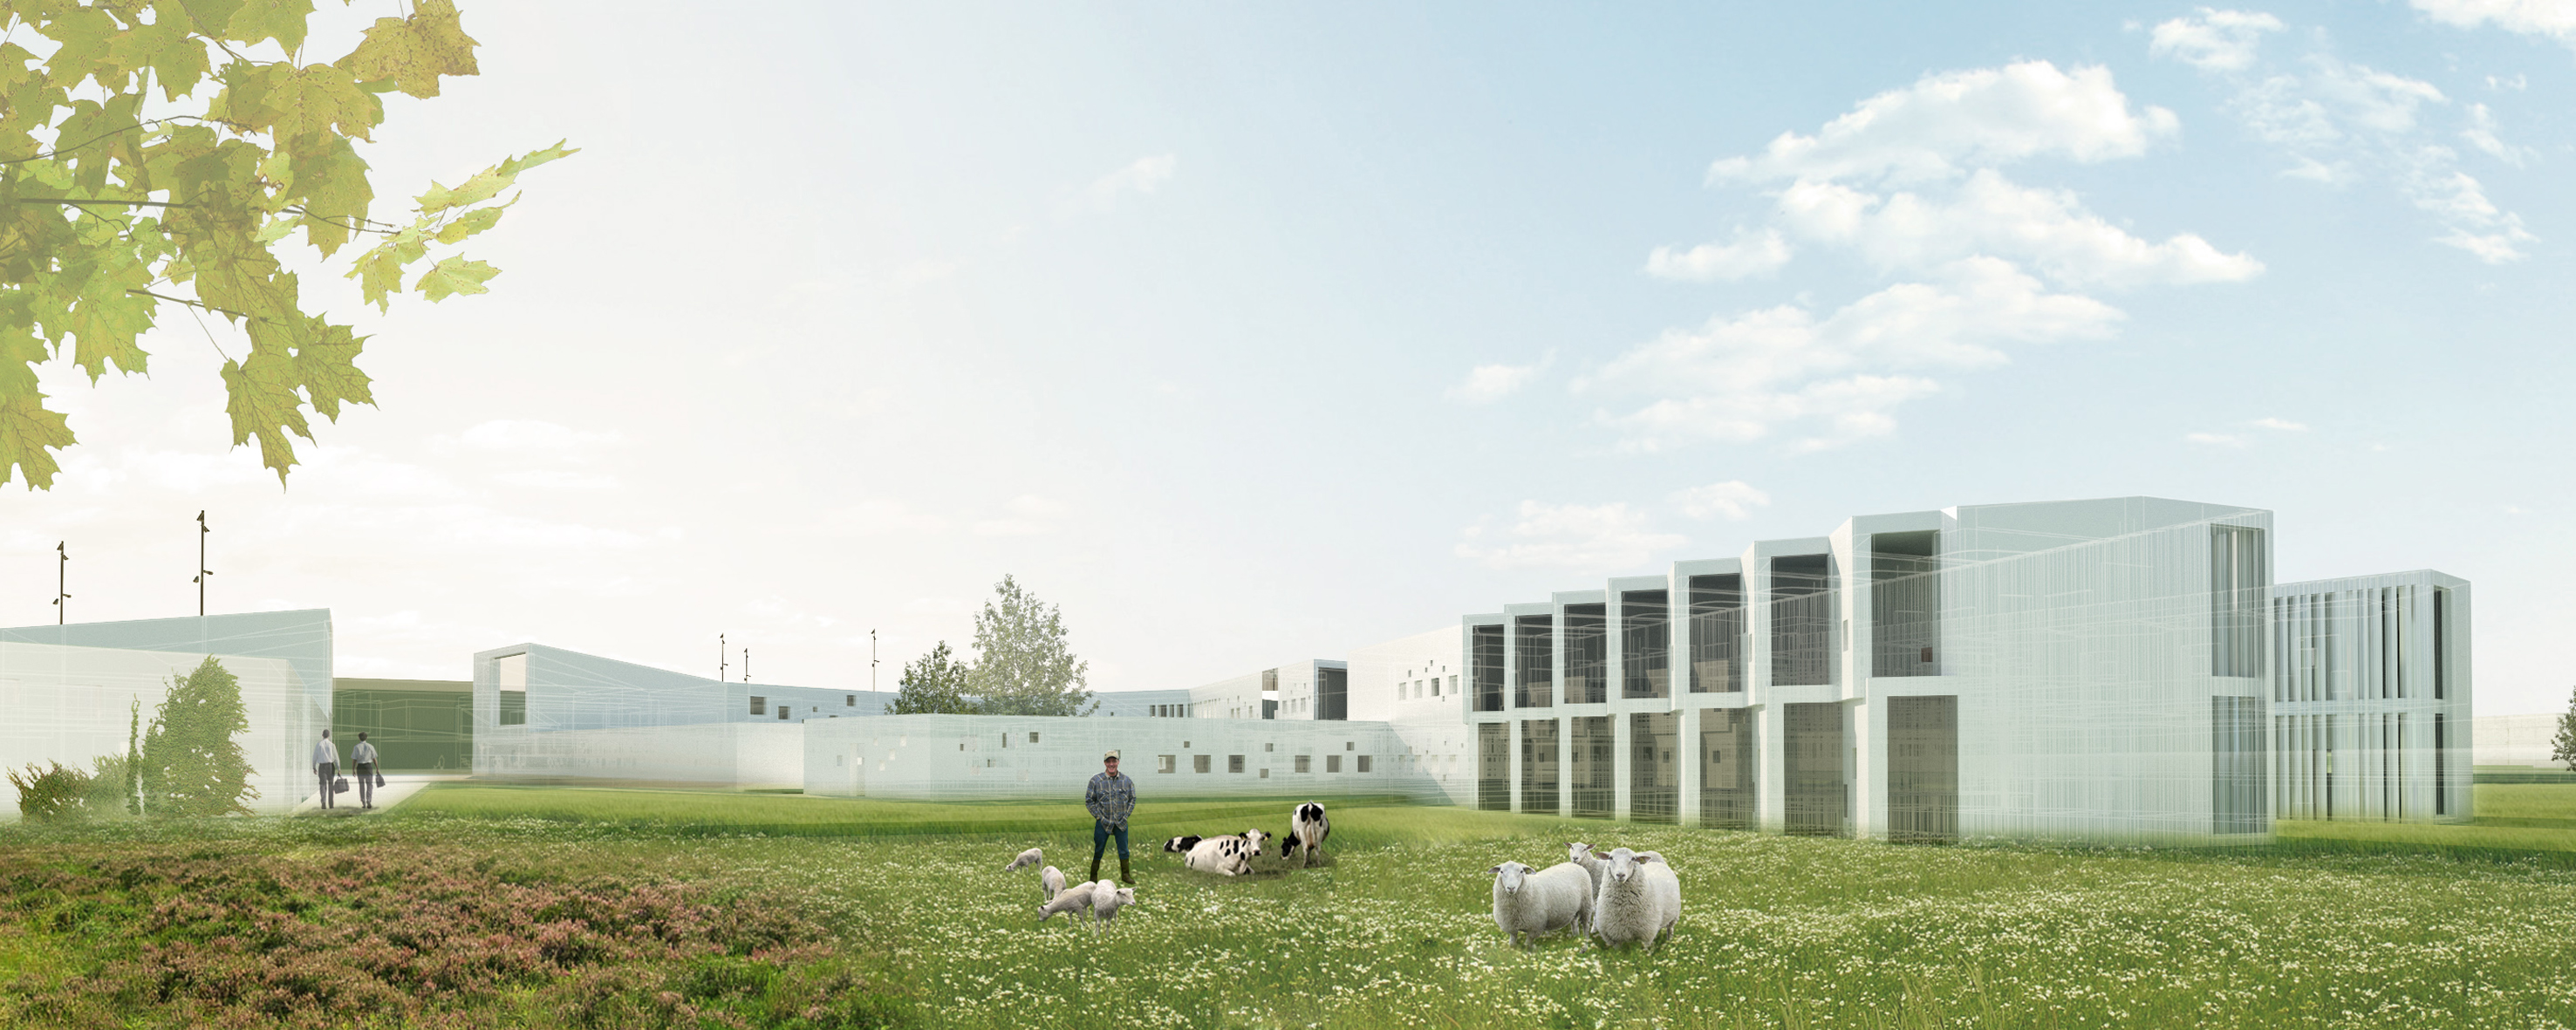 C. F. Møller Architects has won the competition to build a new ...